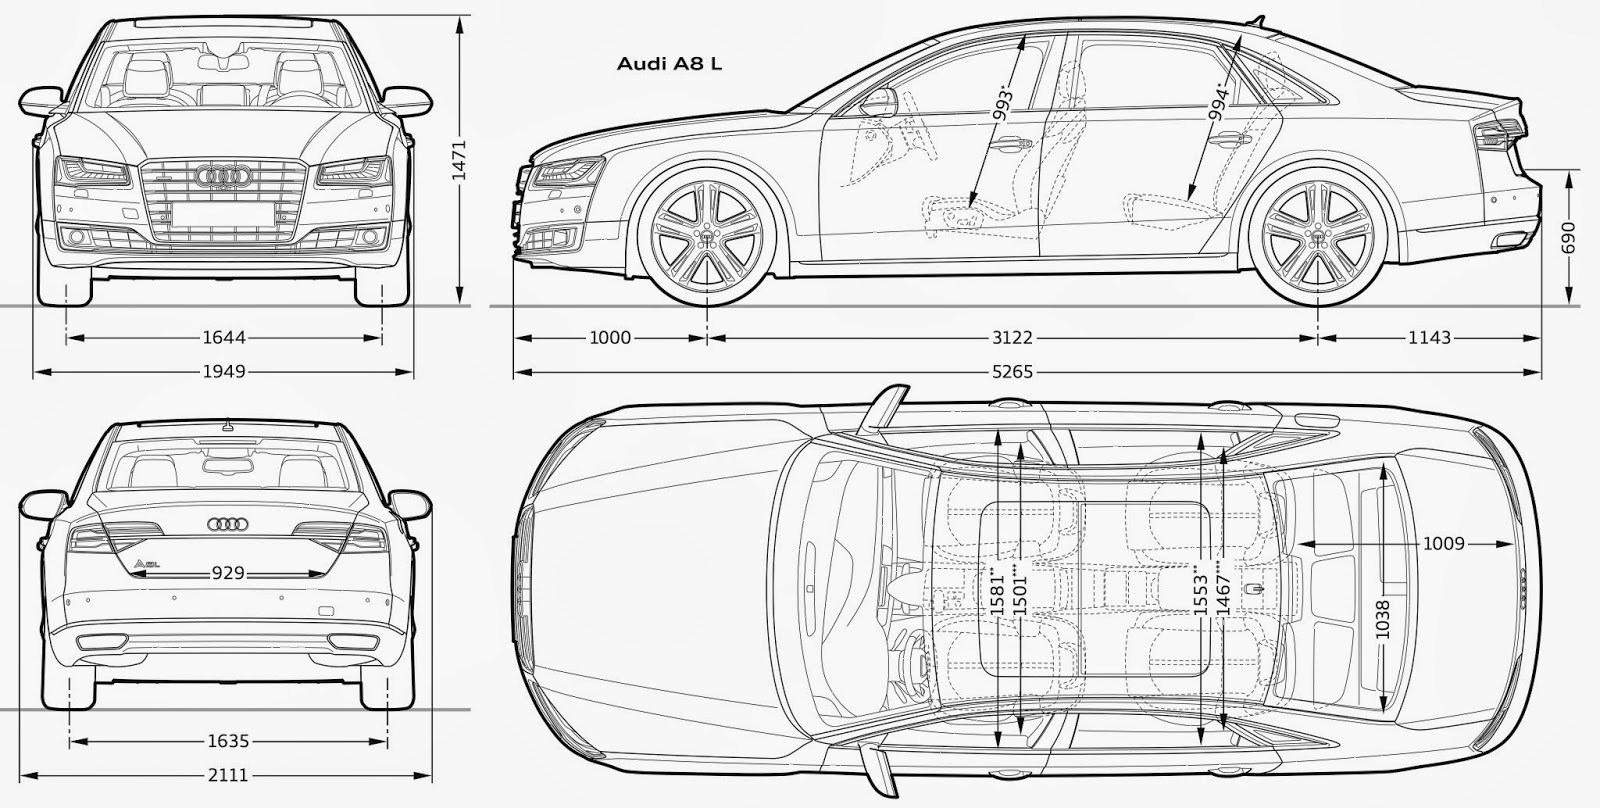 Audi a8 l blueprint download free blueprint for 3d modeling for Free 3d blueprints